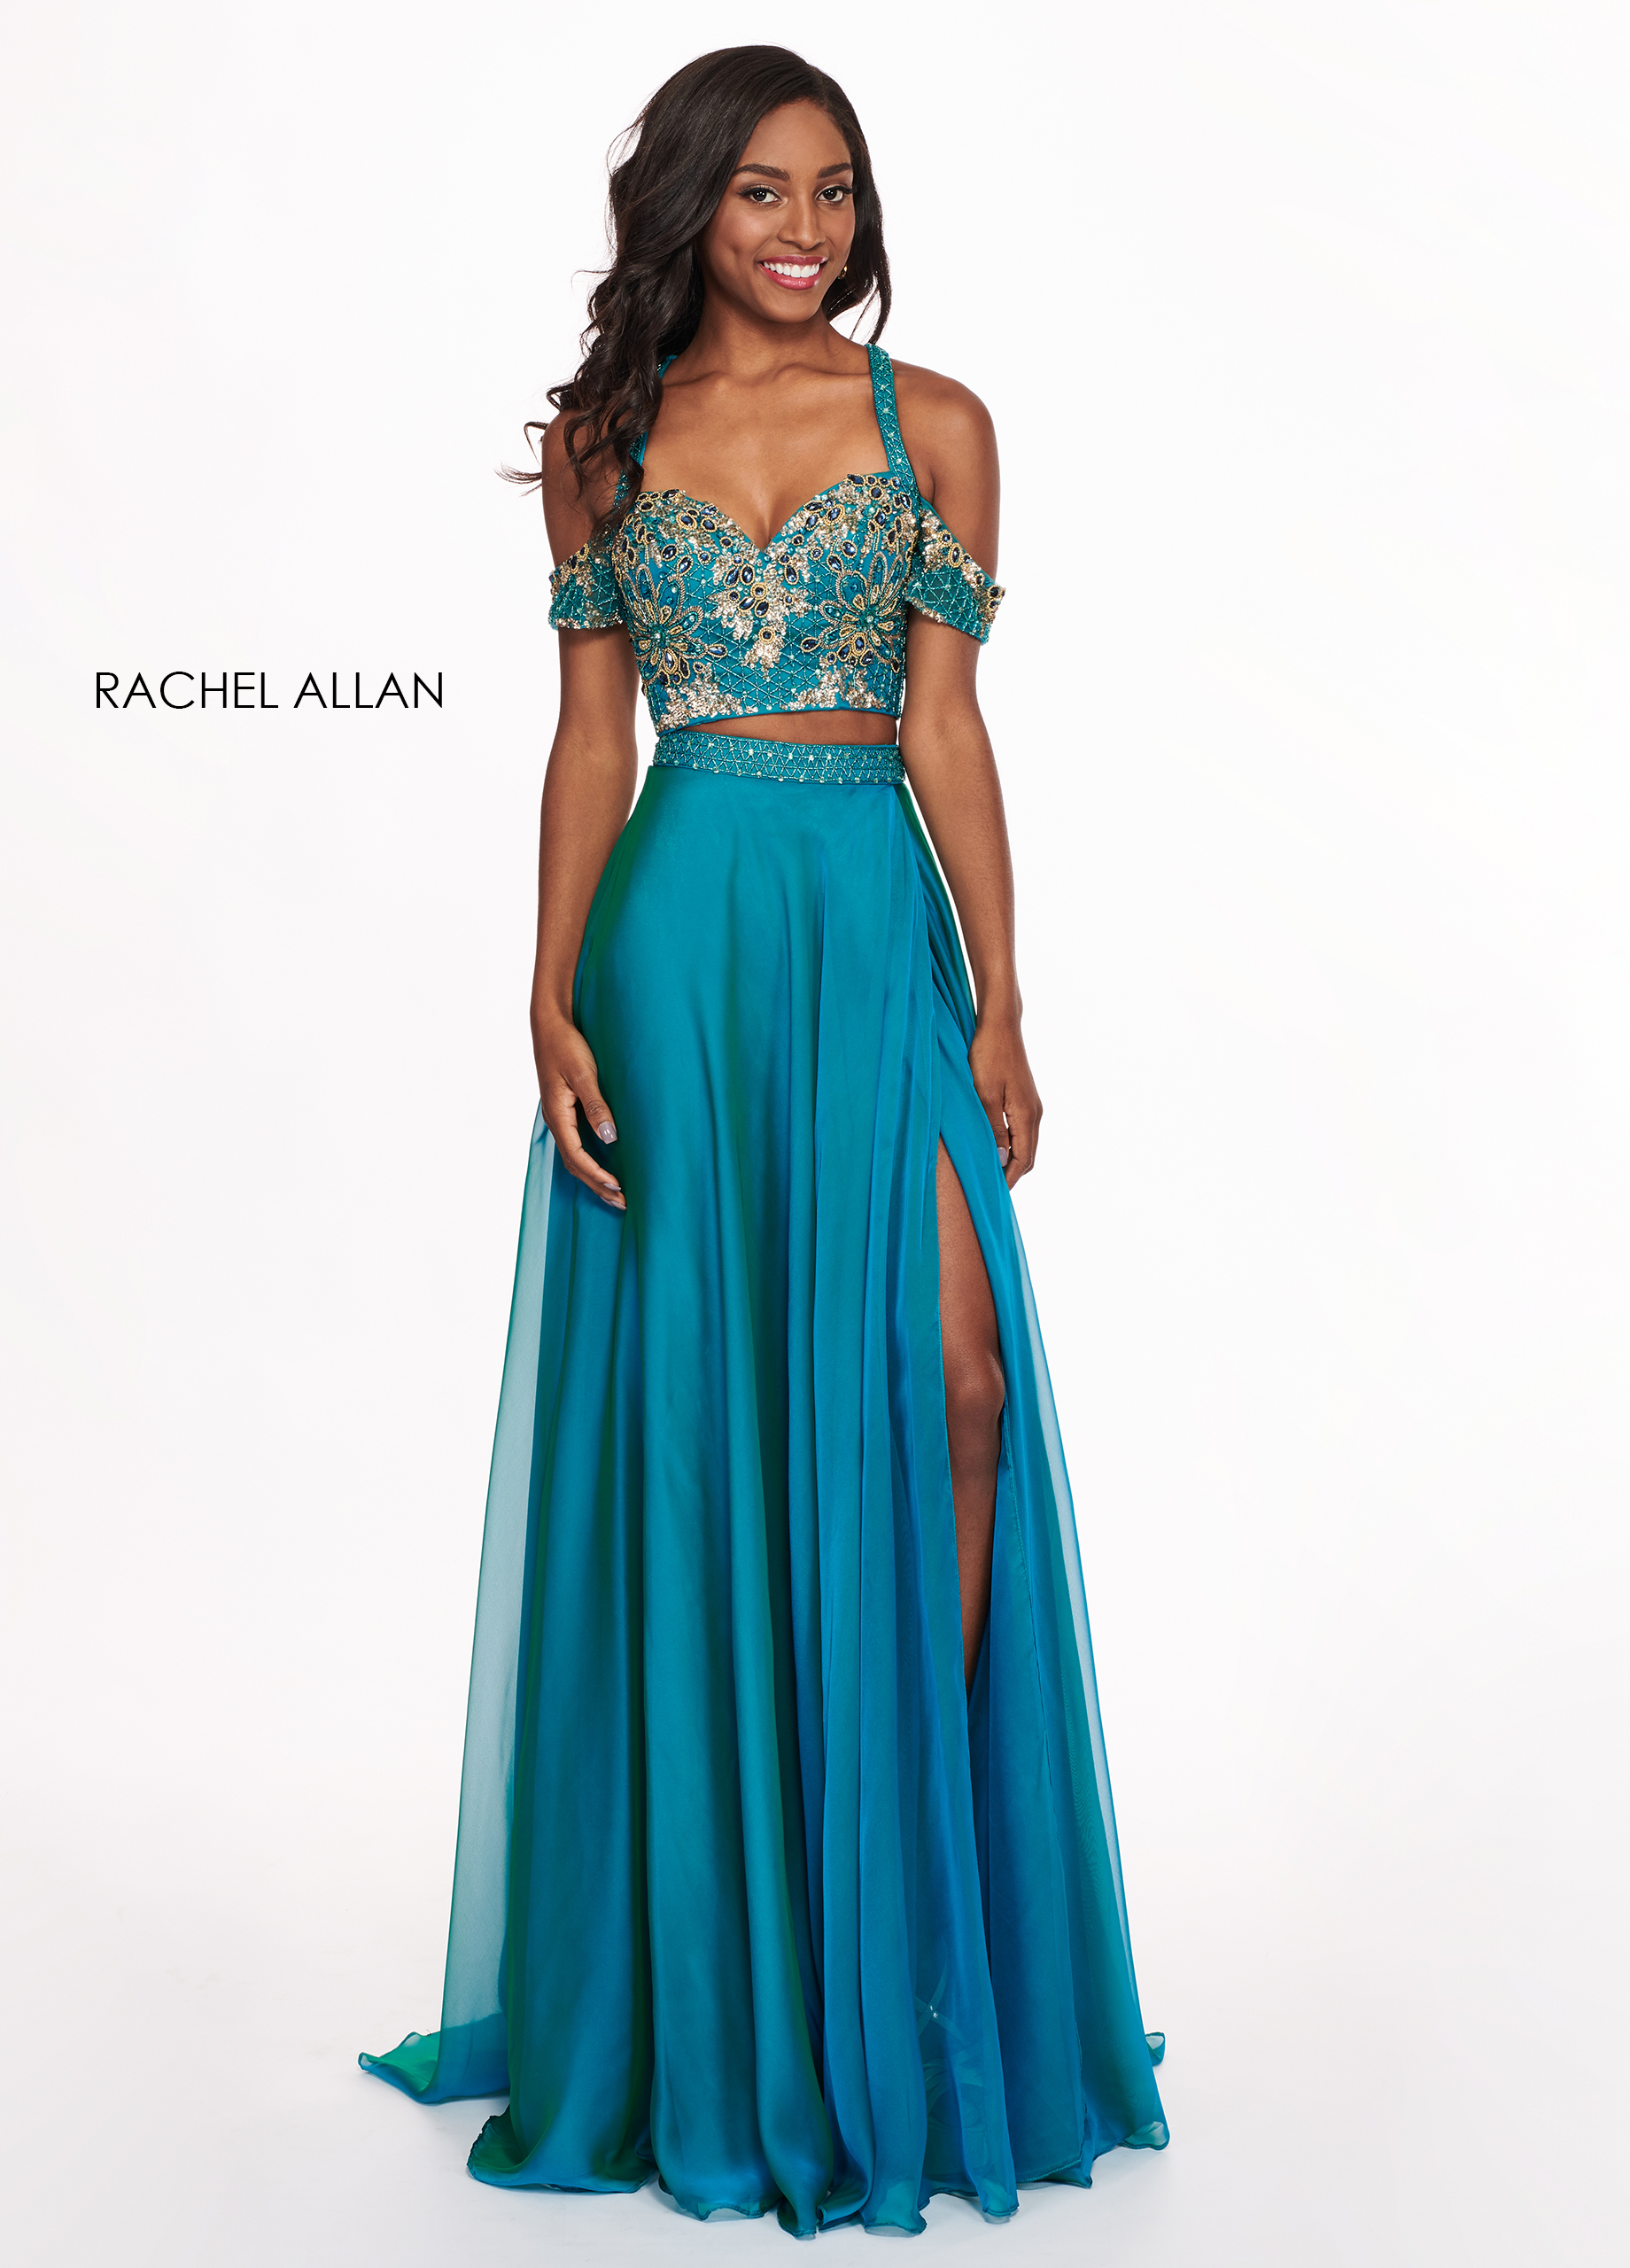 Open Shoulder A-Line Prom Dresses in Turquoise Color